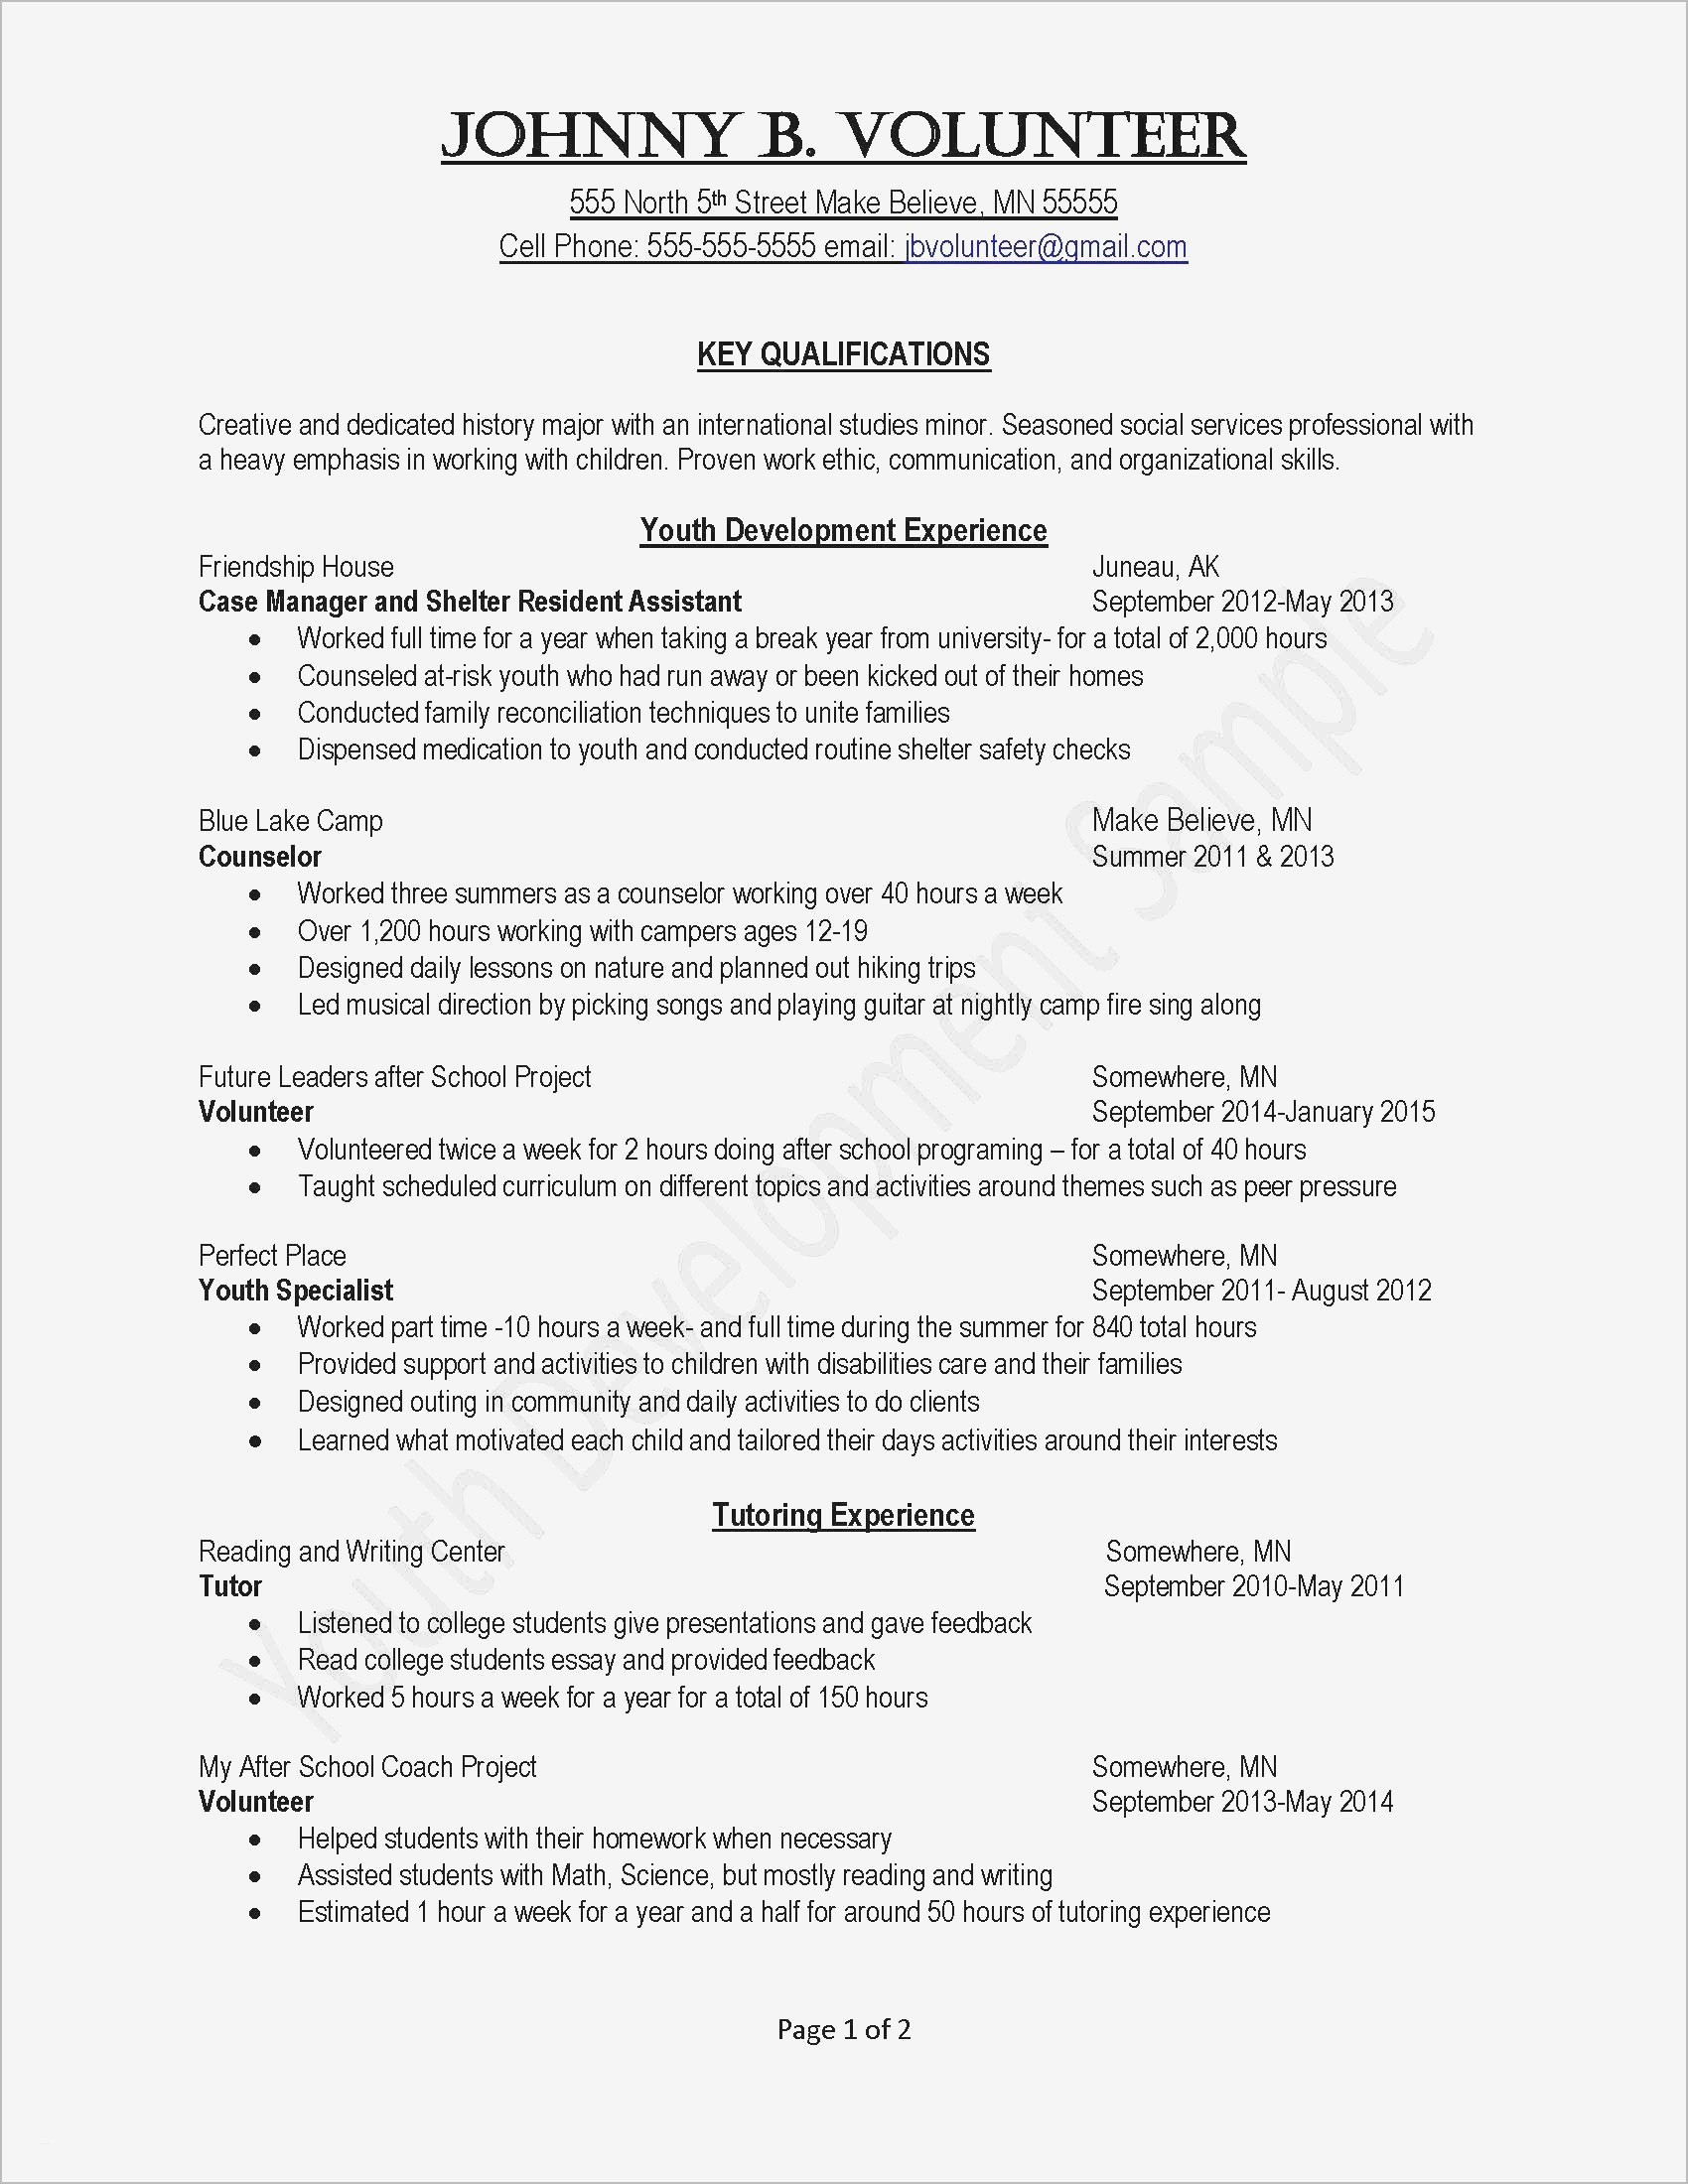 Free Cover Letter Design Template - Resume Cover Page Template Free Simple Job Fer Letter Template Us